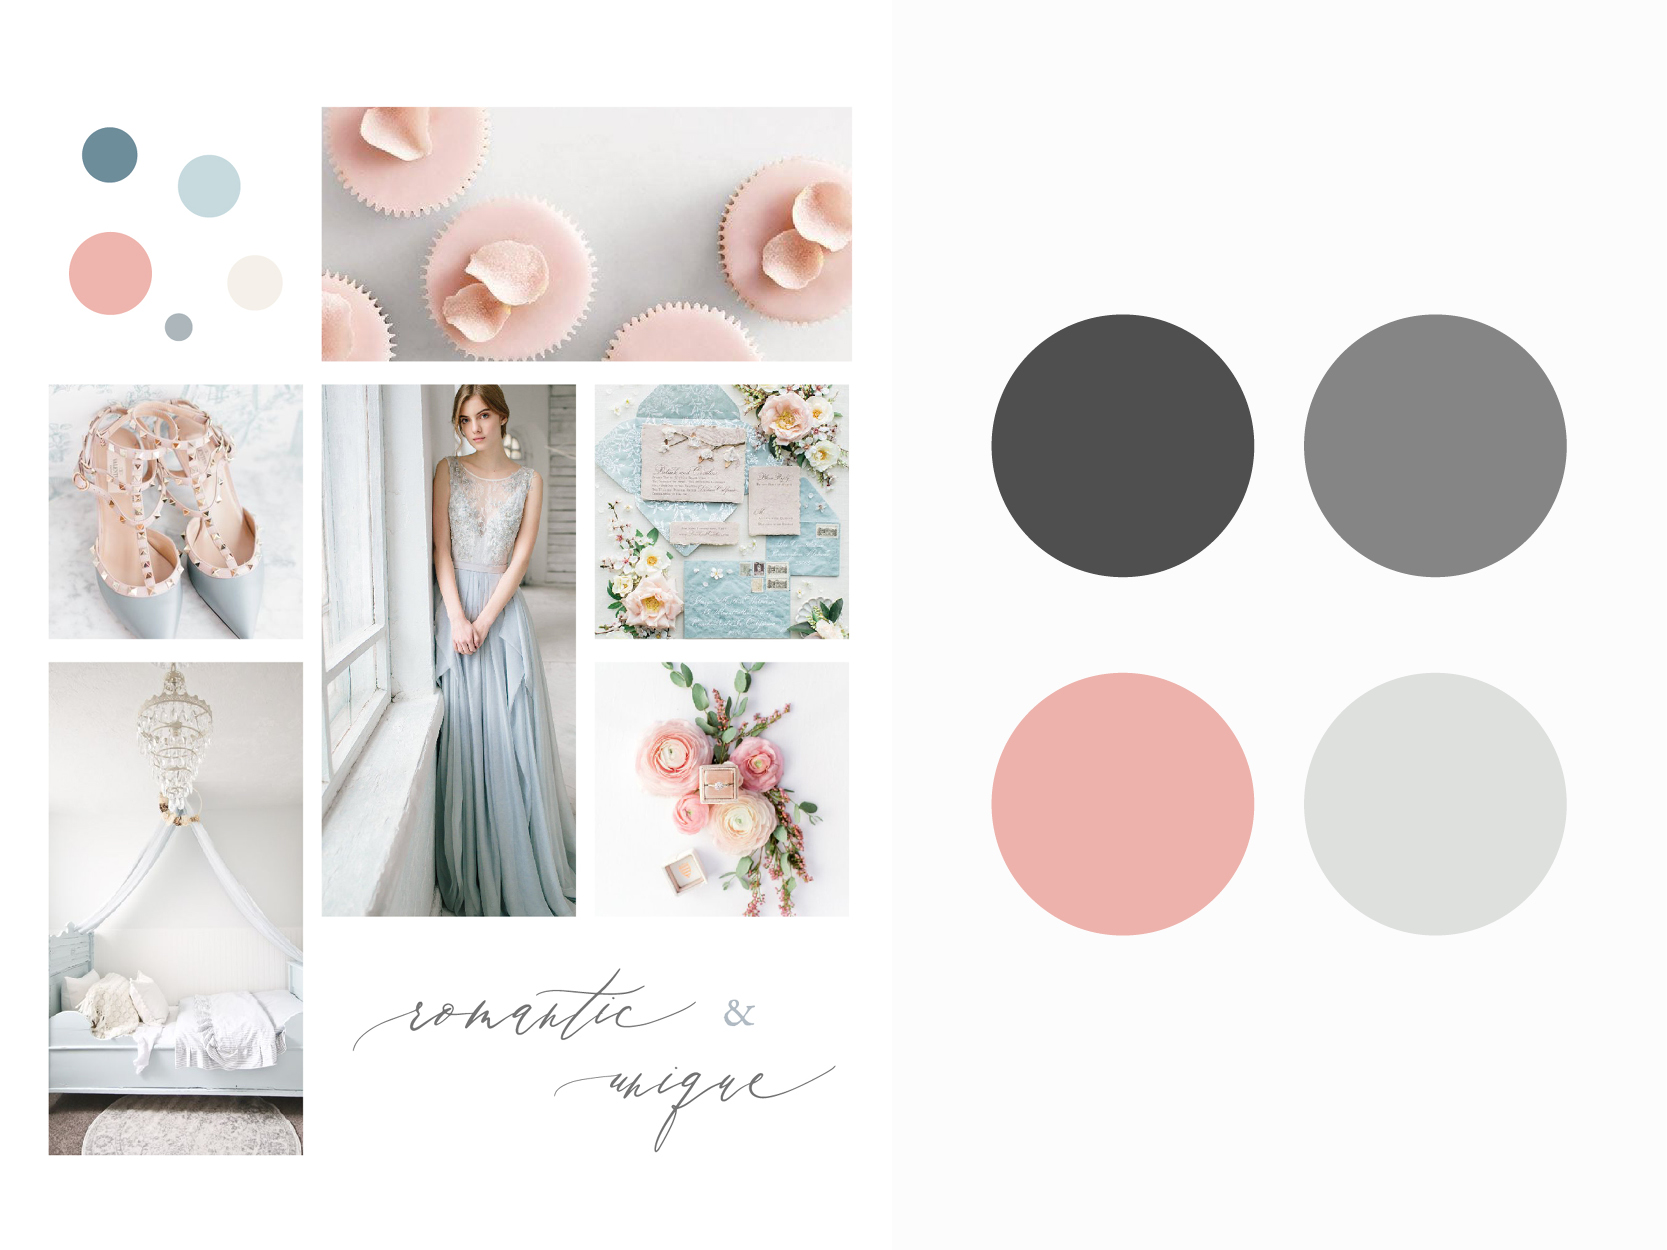 Emma Rose Company designed her custom Squarespace website who primarily works with photographers to help them reach their business goals through thoughtful design.